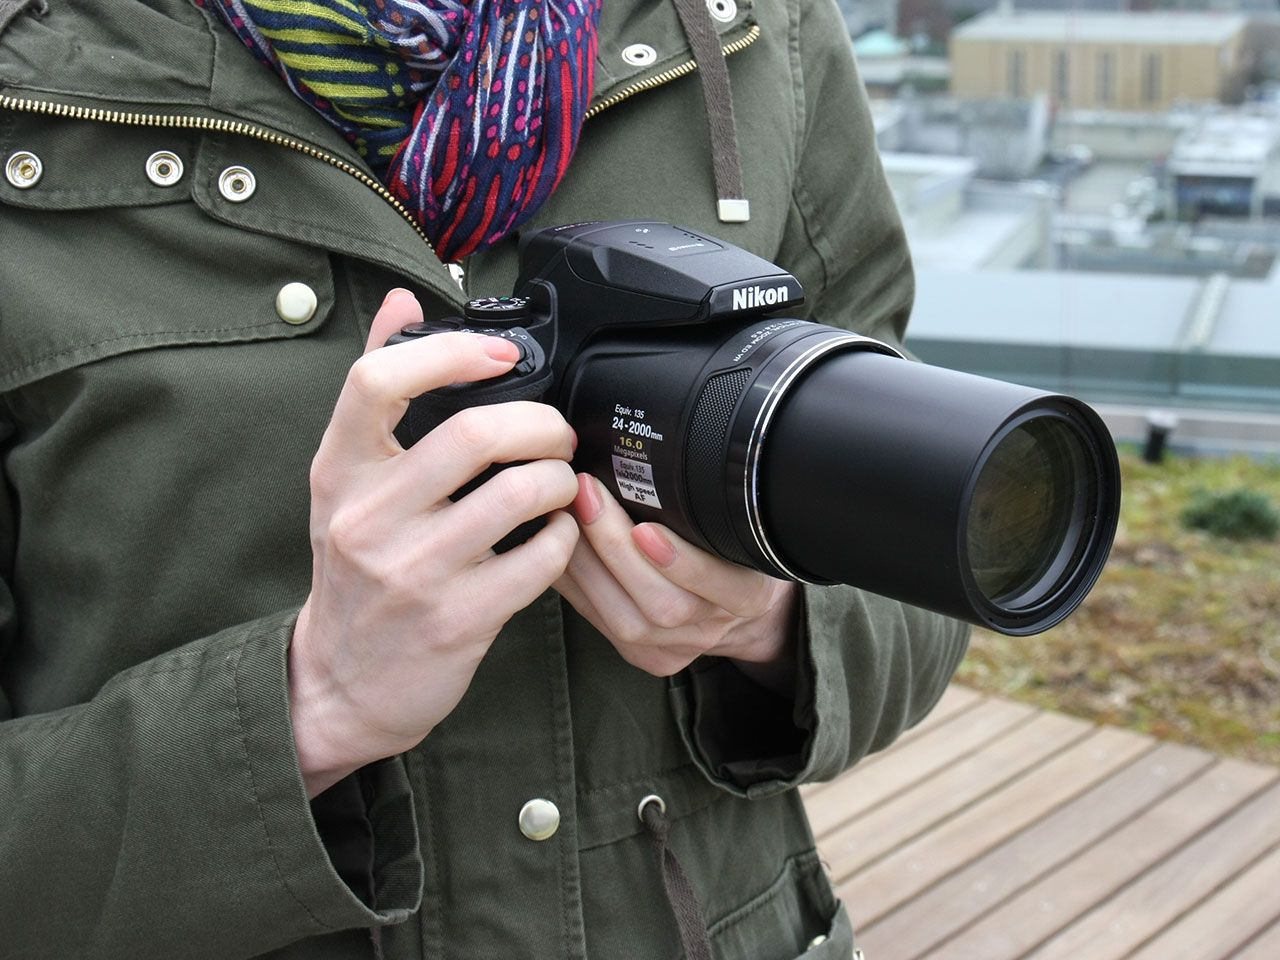 Nikon Coolpix P900 - Image 2 | Latest Models from the World of Photo